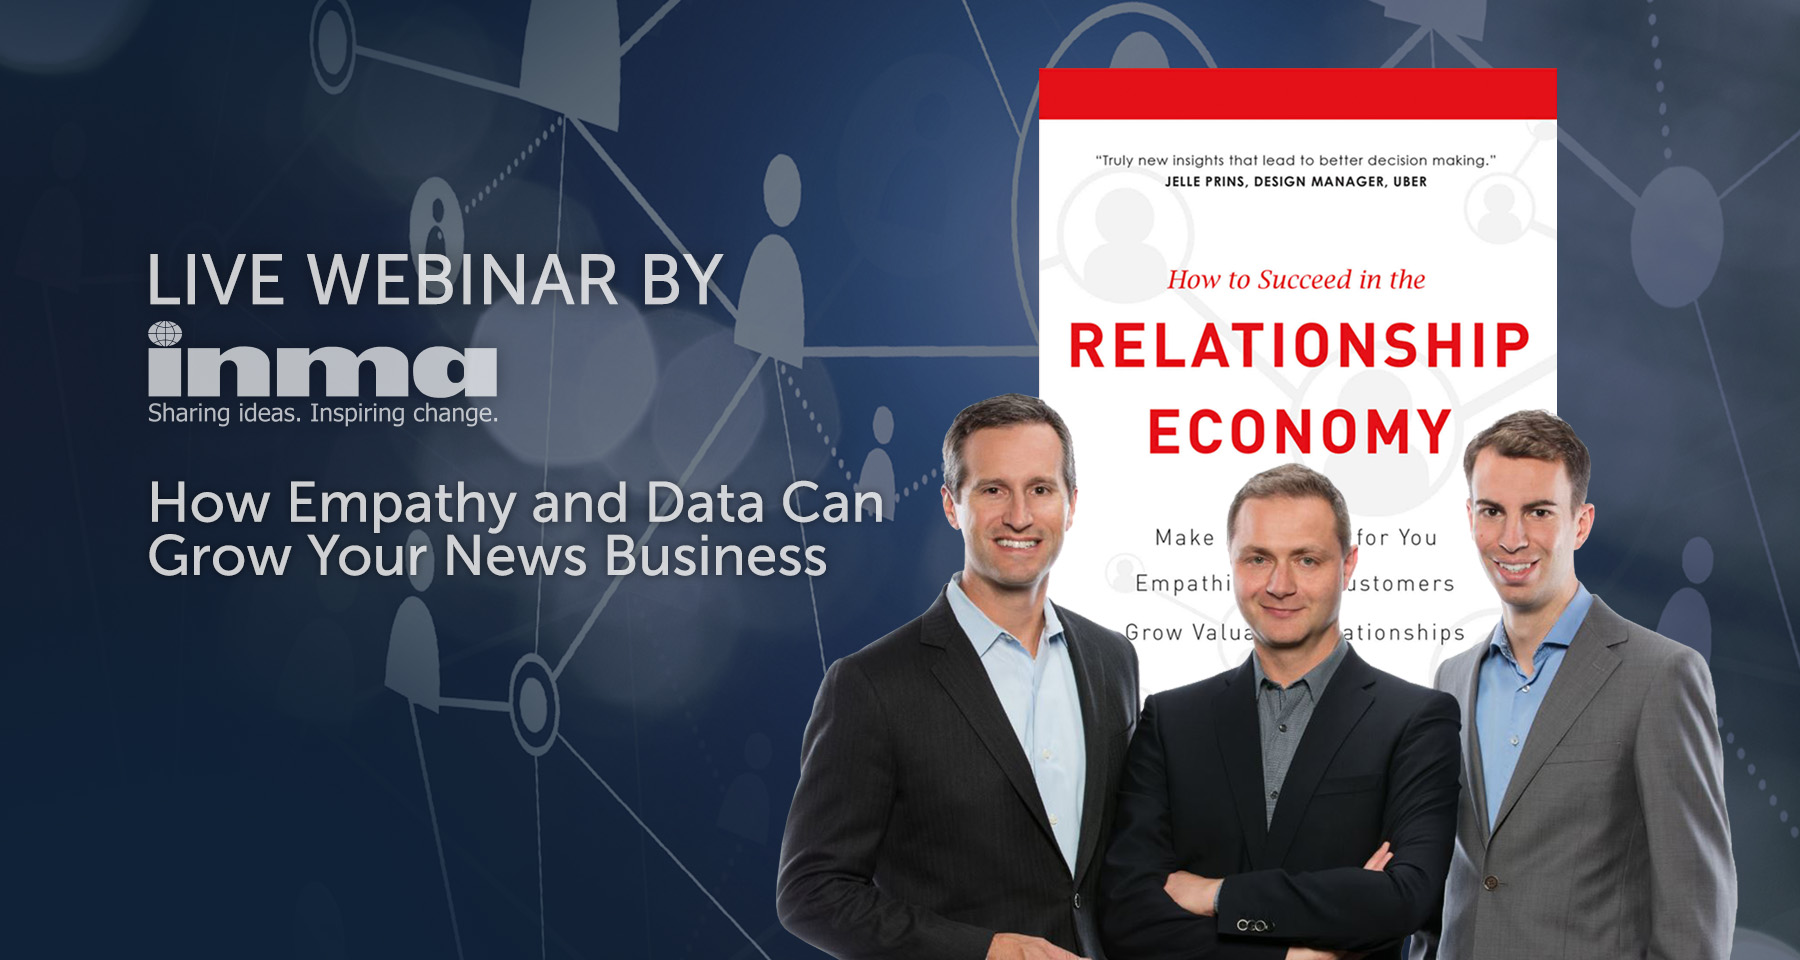 The Relationship Economy: How NRC used customer data and concerns to grow its subscriber base